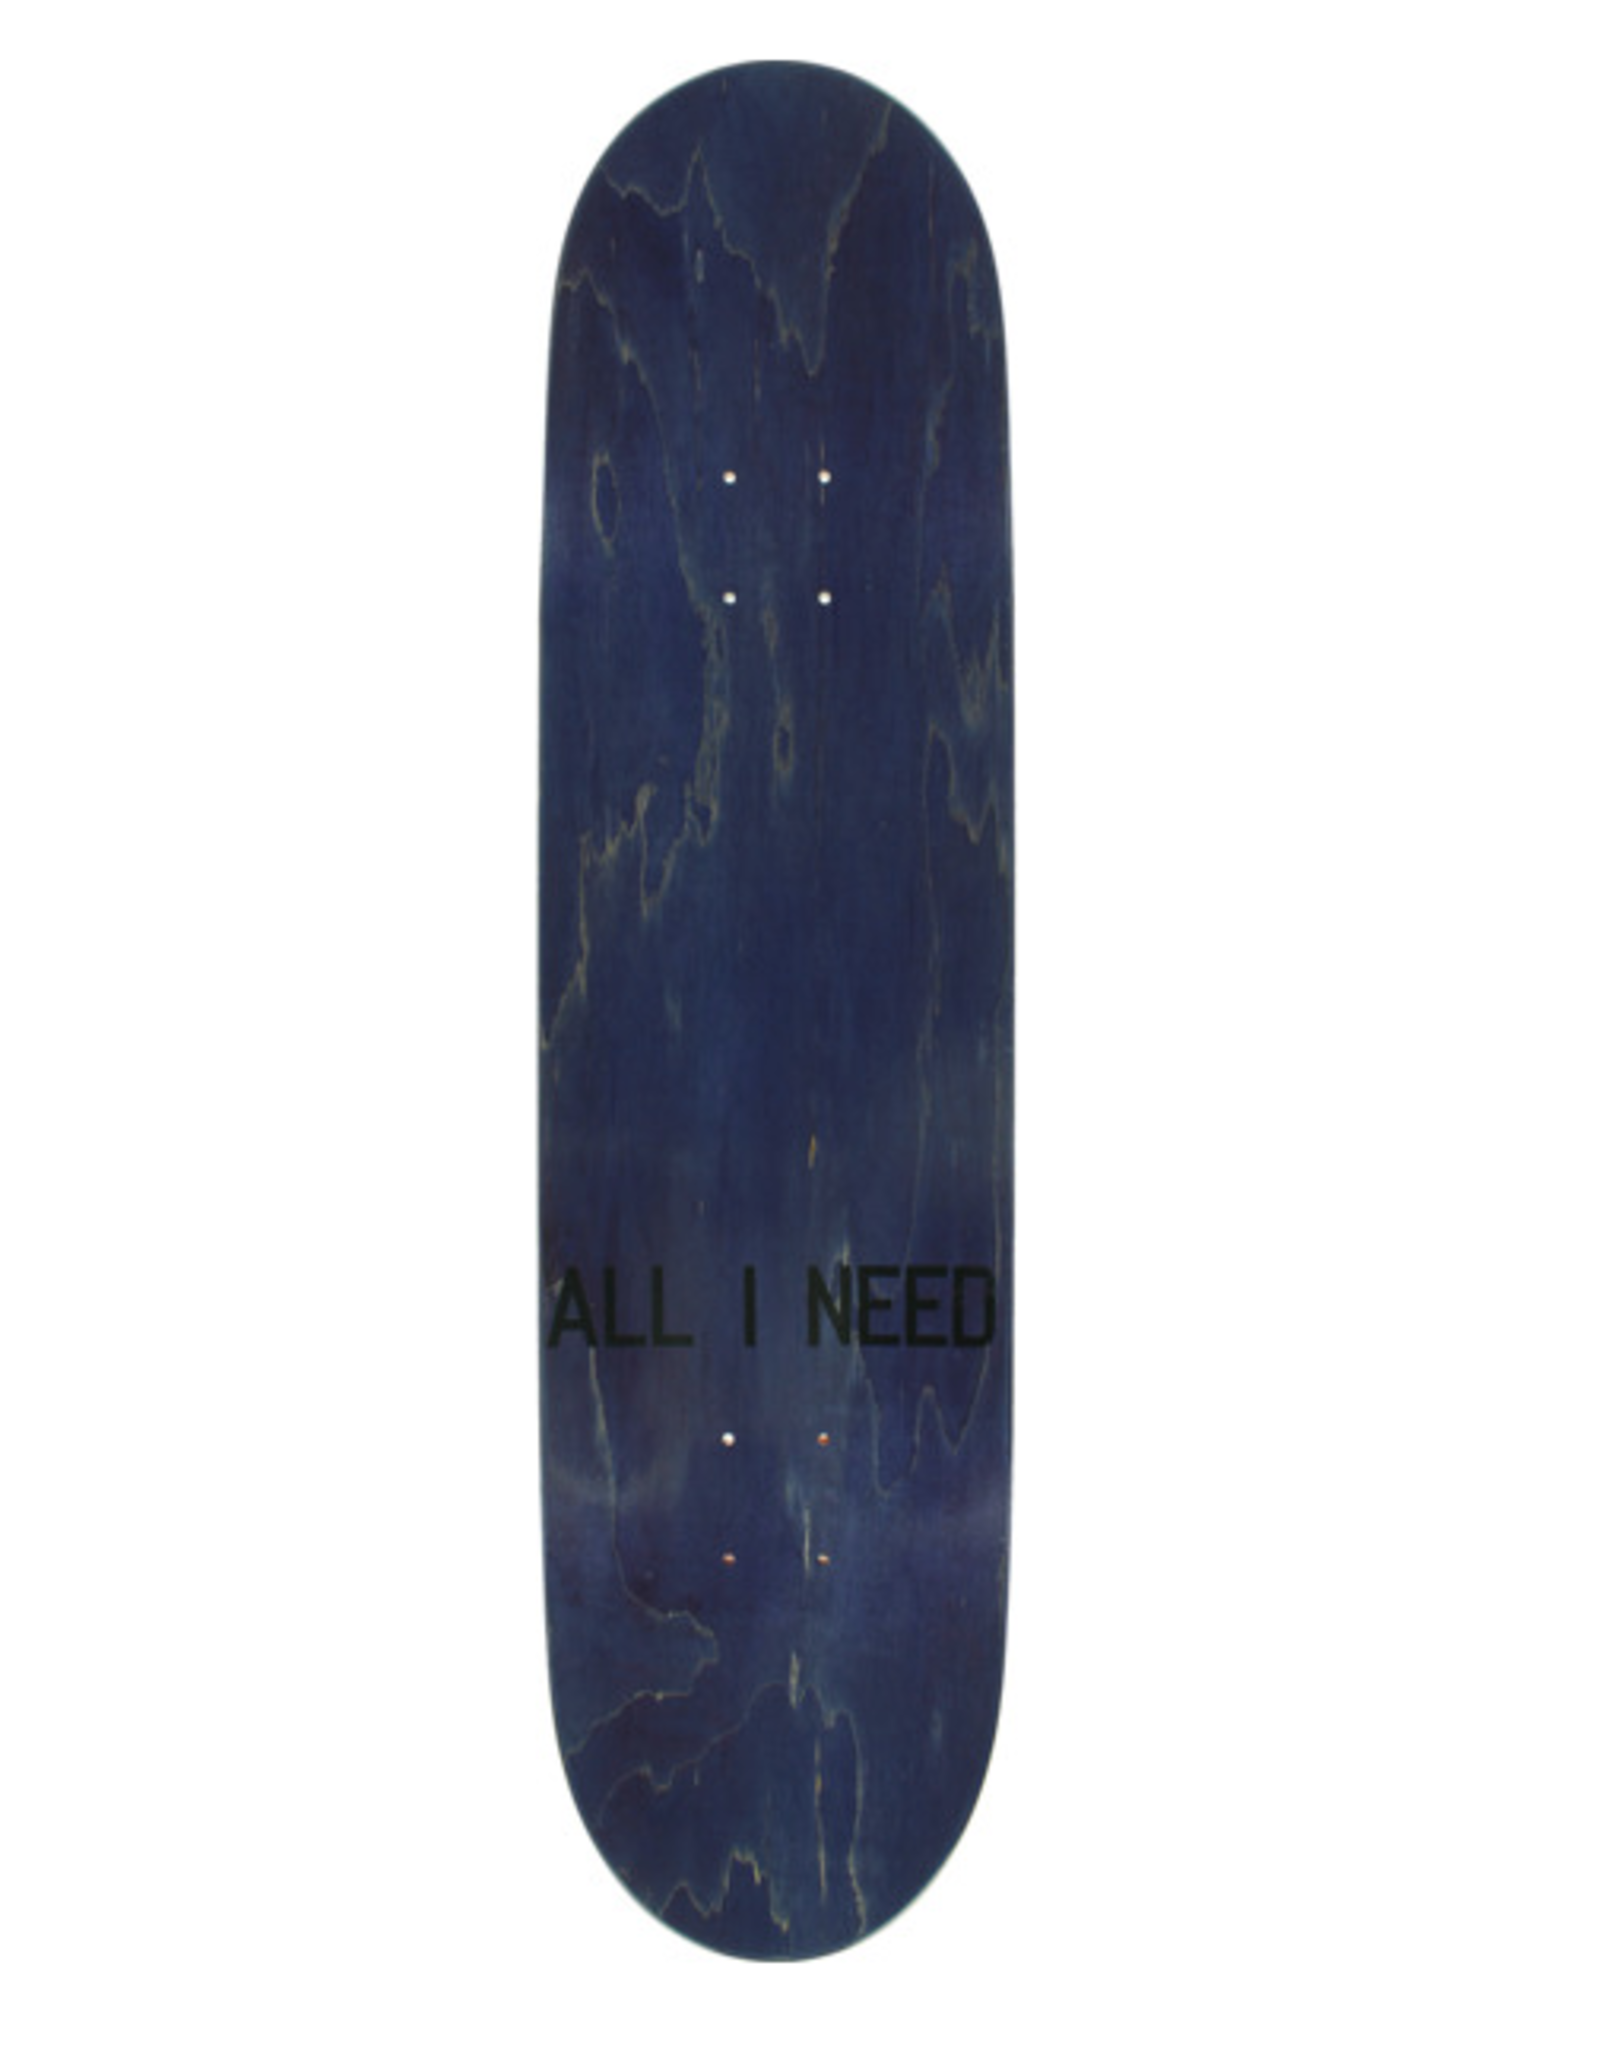 ALL I NEED RECALLED IN SPACE/ASS TO MARS DECK - 8.1